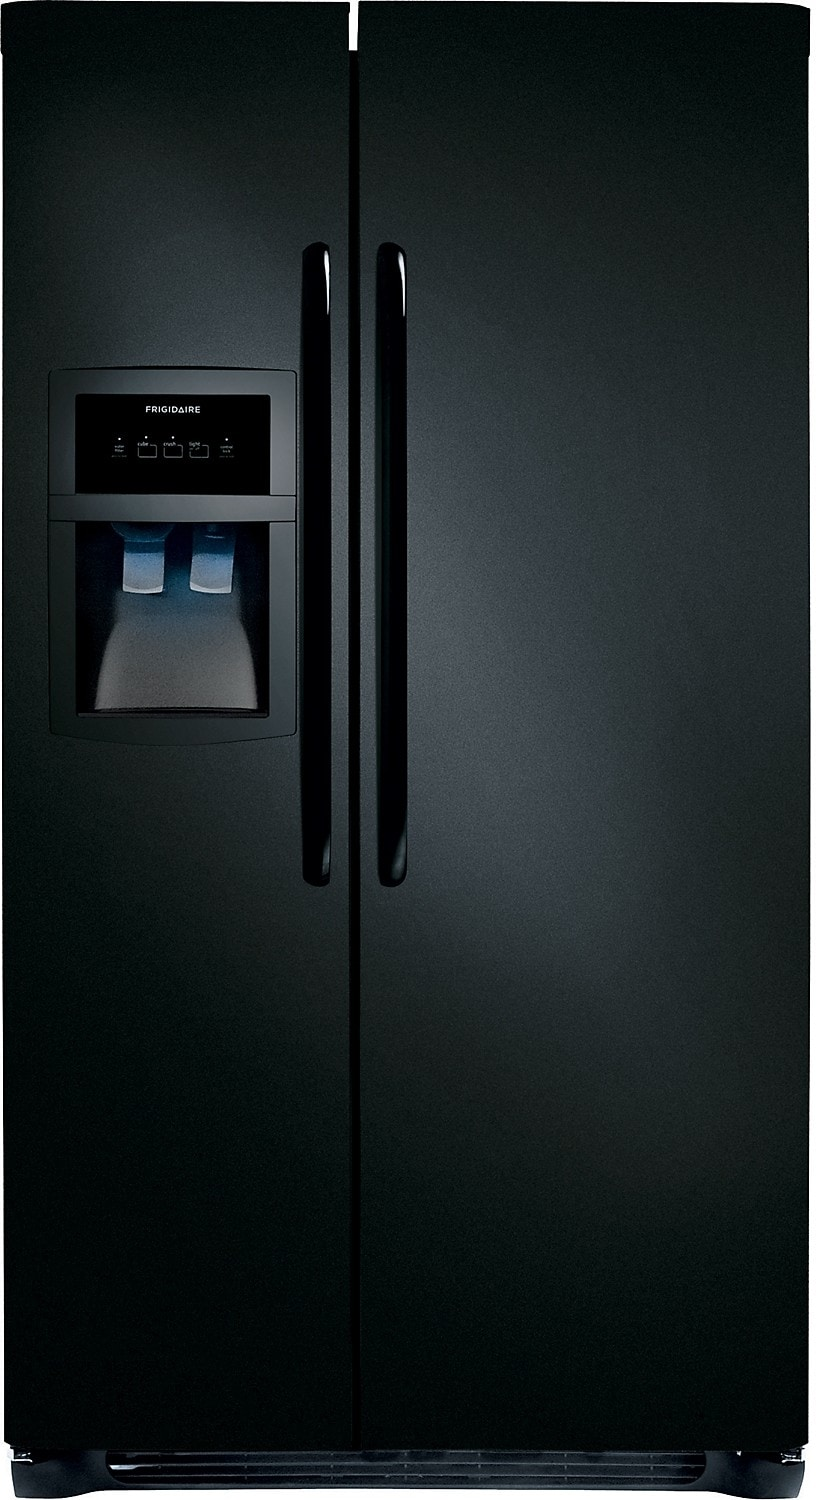 Refrigerators and Freezers - Frigidaire 23 Cu. Ft. Standard-Depth Side-by-Side Refrigerator - Black